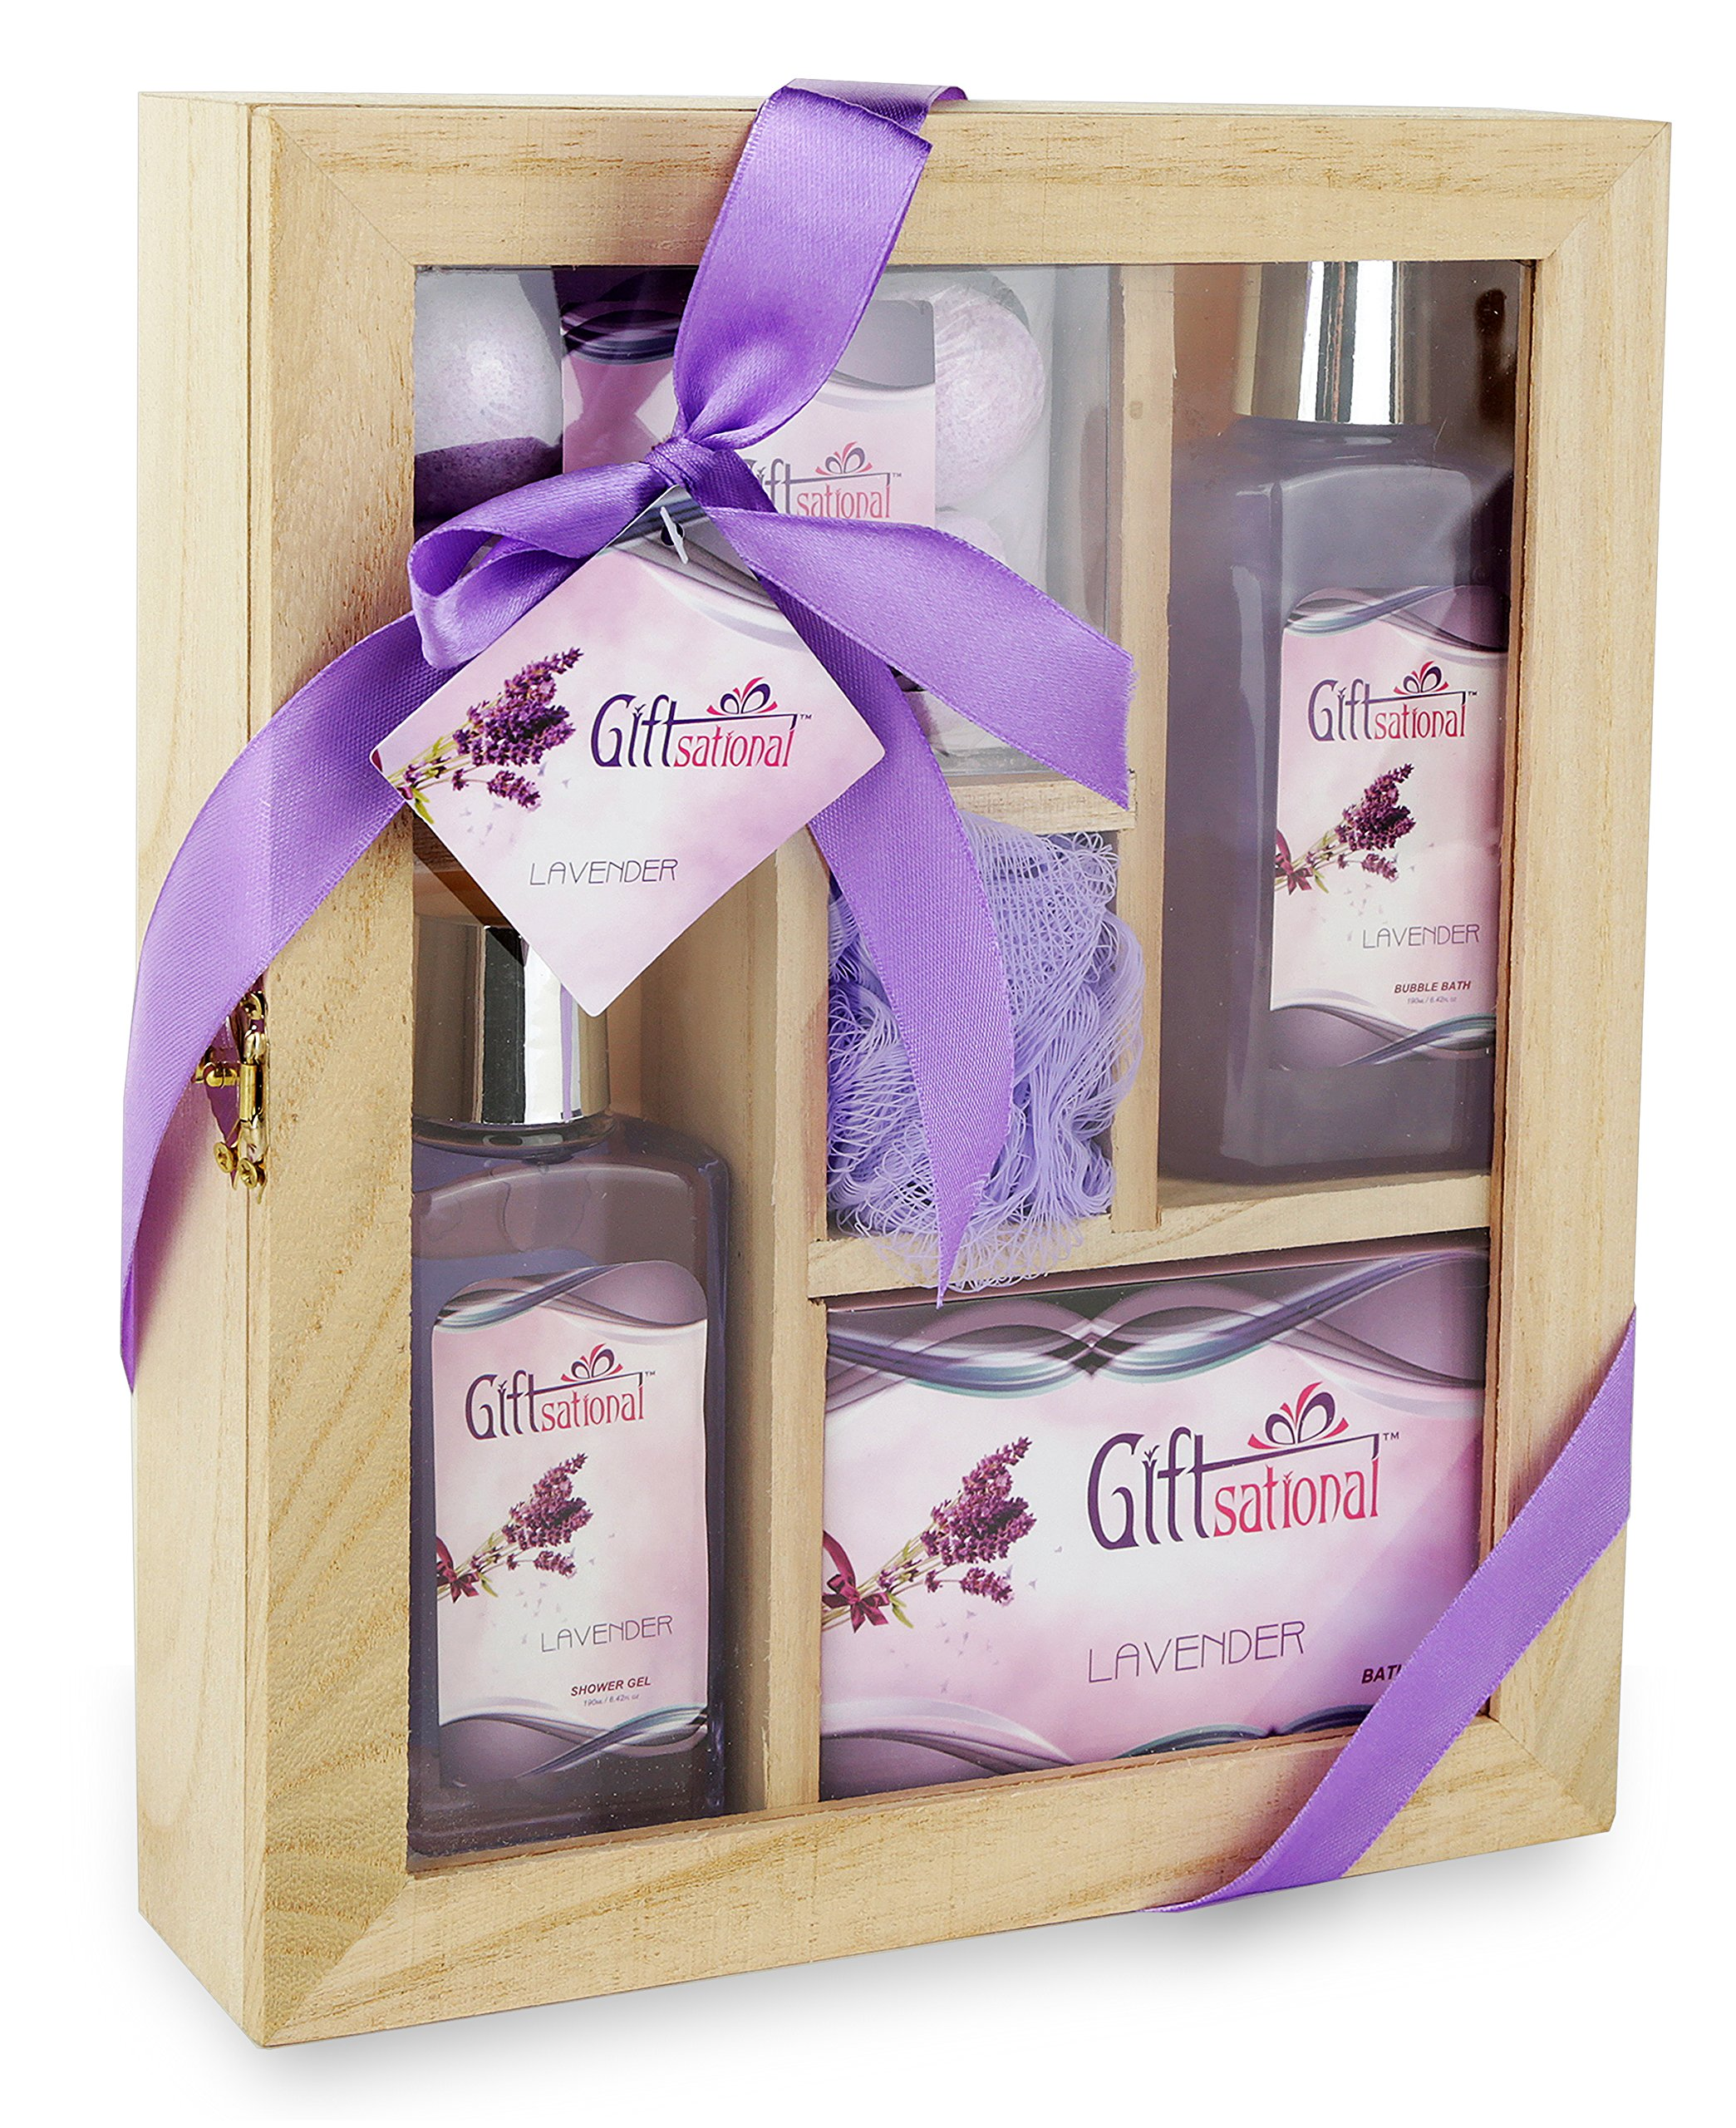 Spa Gift Basket With Sensual Lavender fragrance - Bath set Includes Shower Gel, Bubble Bath, Bath Bombs and More! Great Graduation, Birthday, Anniversary, or Wedding Spa Gift Set for Women and Girls